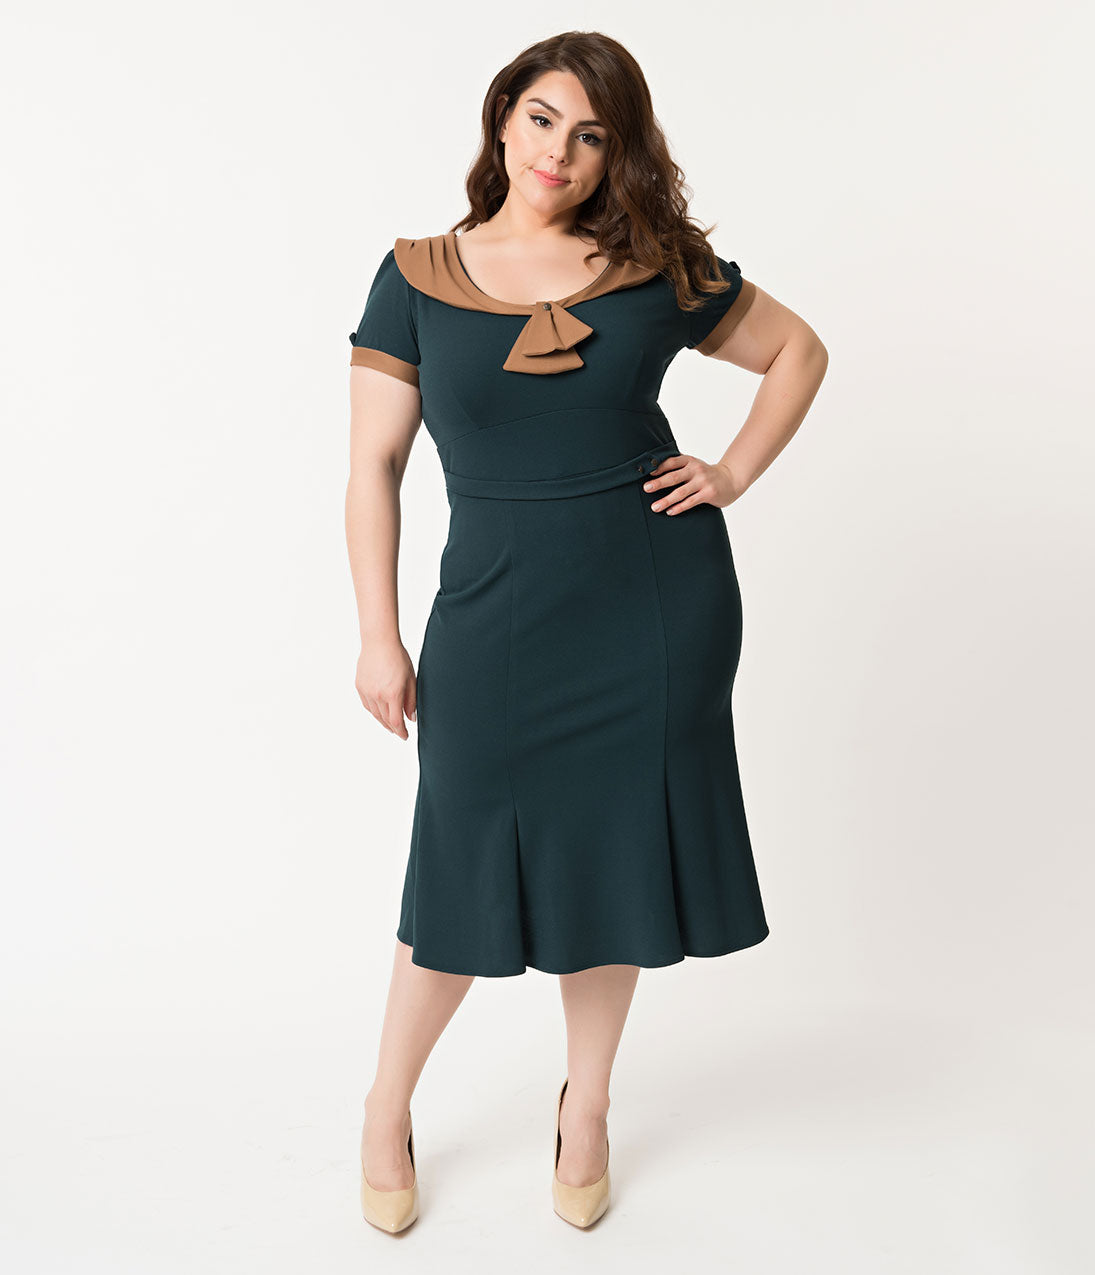 1940s Plus Size Fashion: Style Advice from 1940s to Today Stop Staring Plus Size 1940S Style Forest Green  Brown Army Girl Wiggle Dress $99.00 AT vintagedancer.com